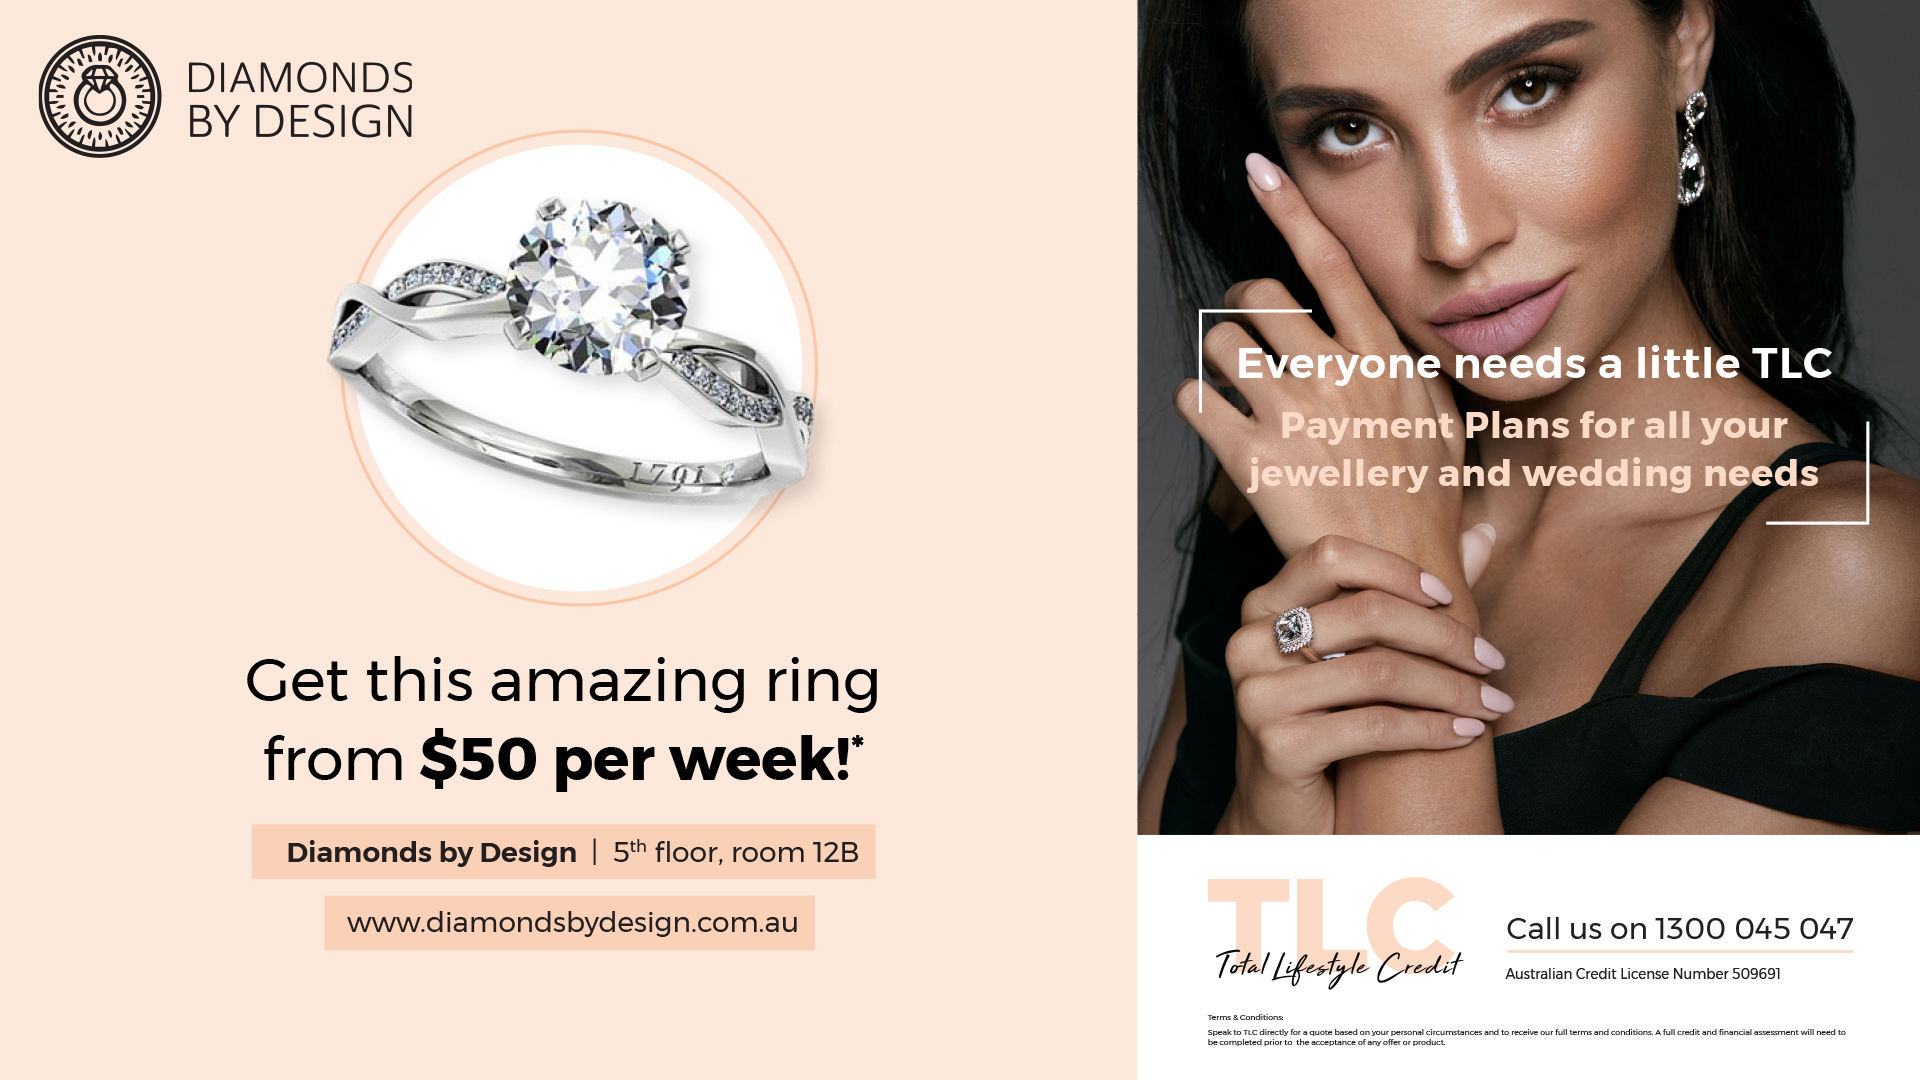 Get amazing rings for $50 per week